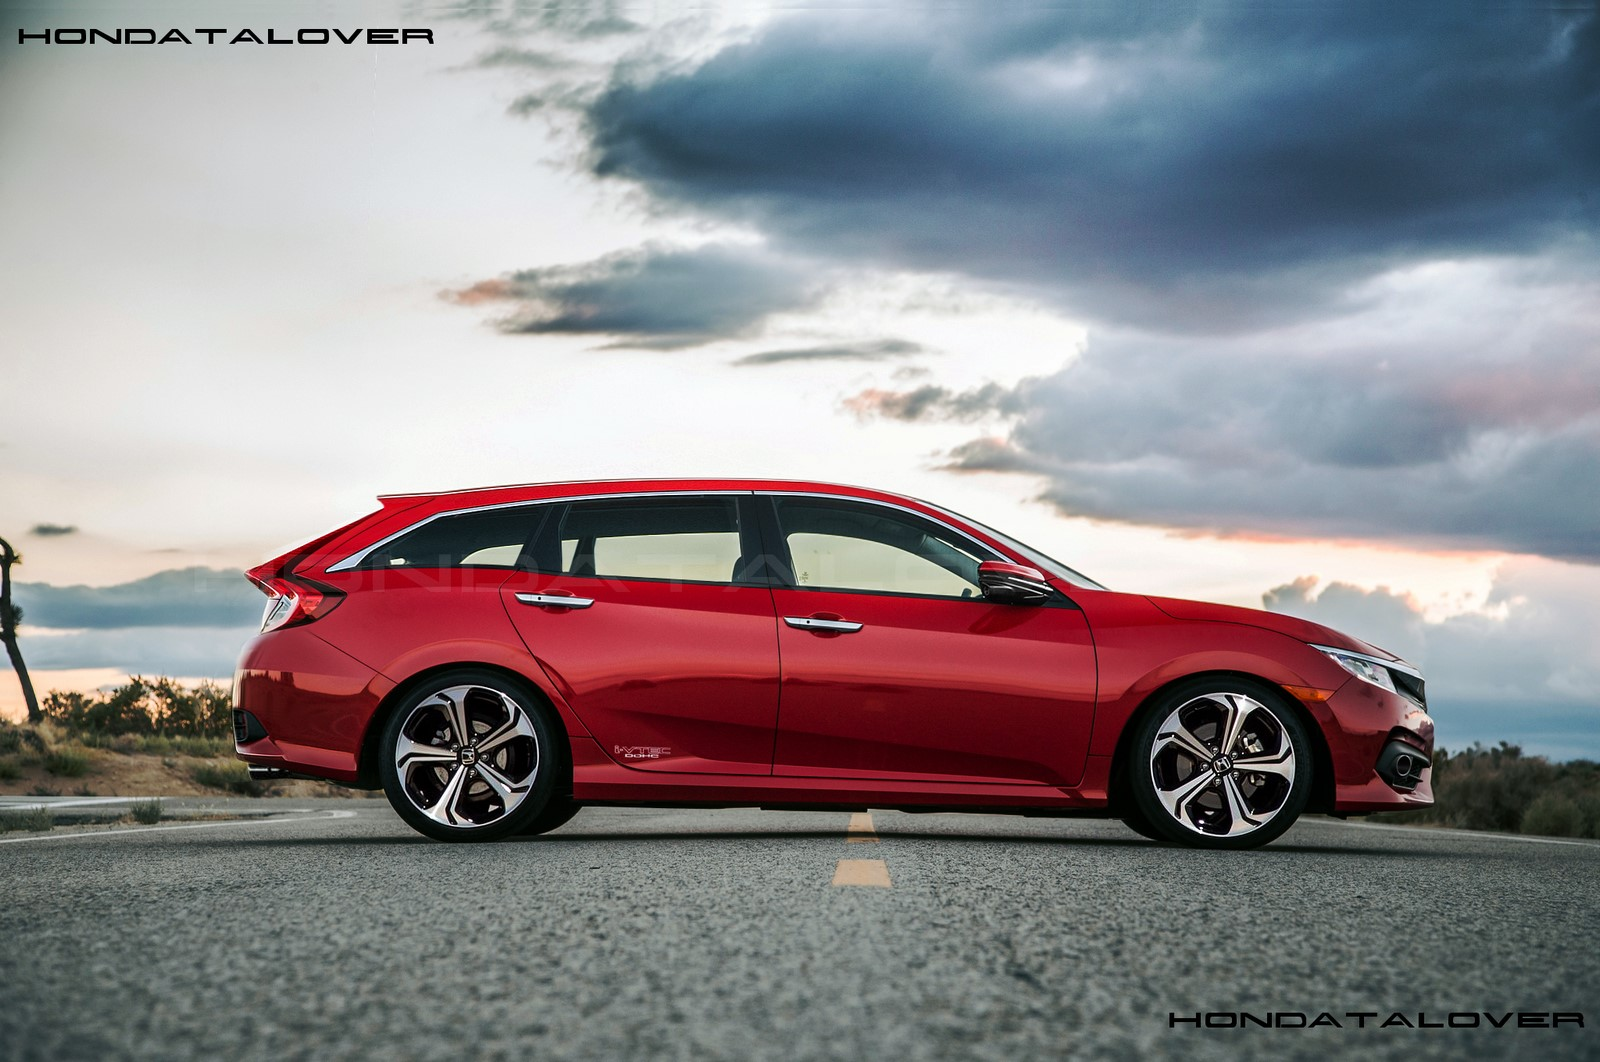 2019 Honda Civic Si photo - 4